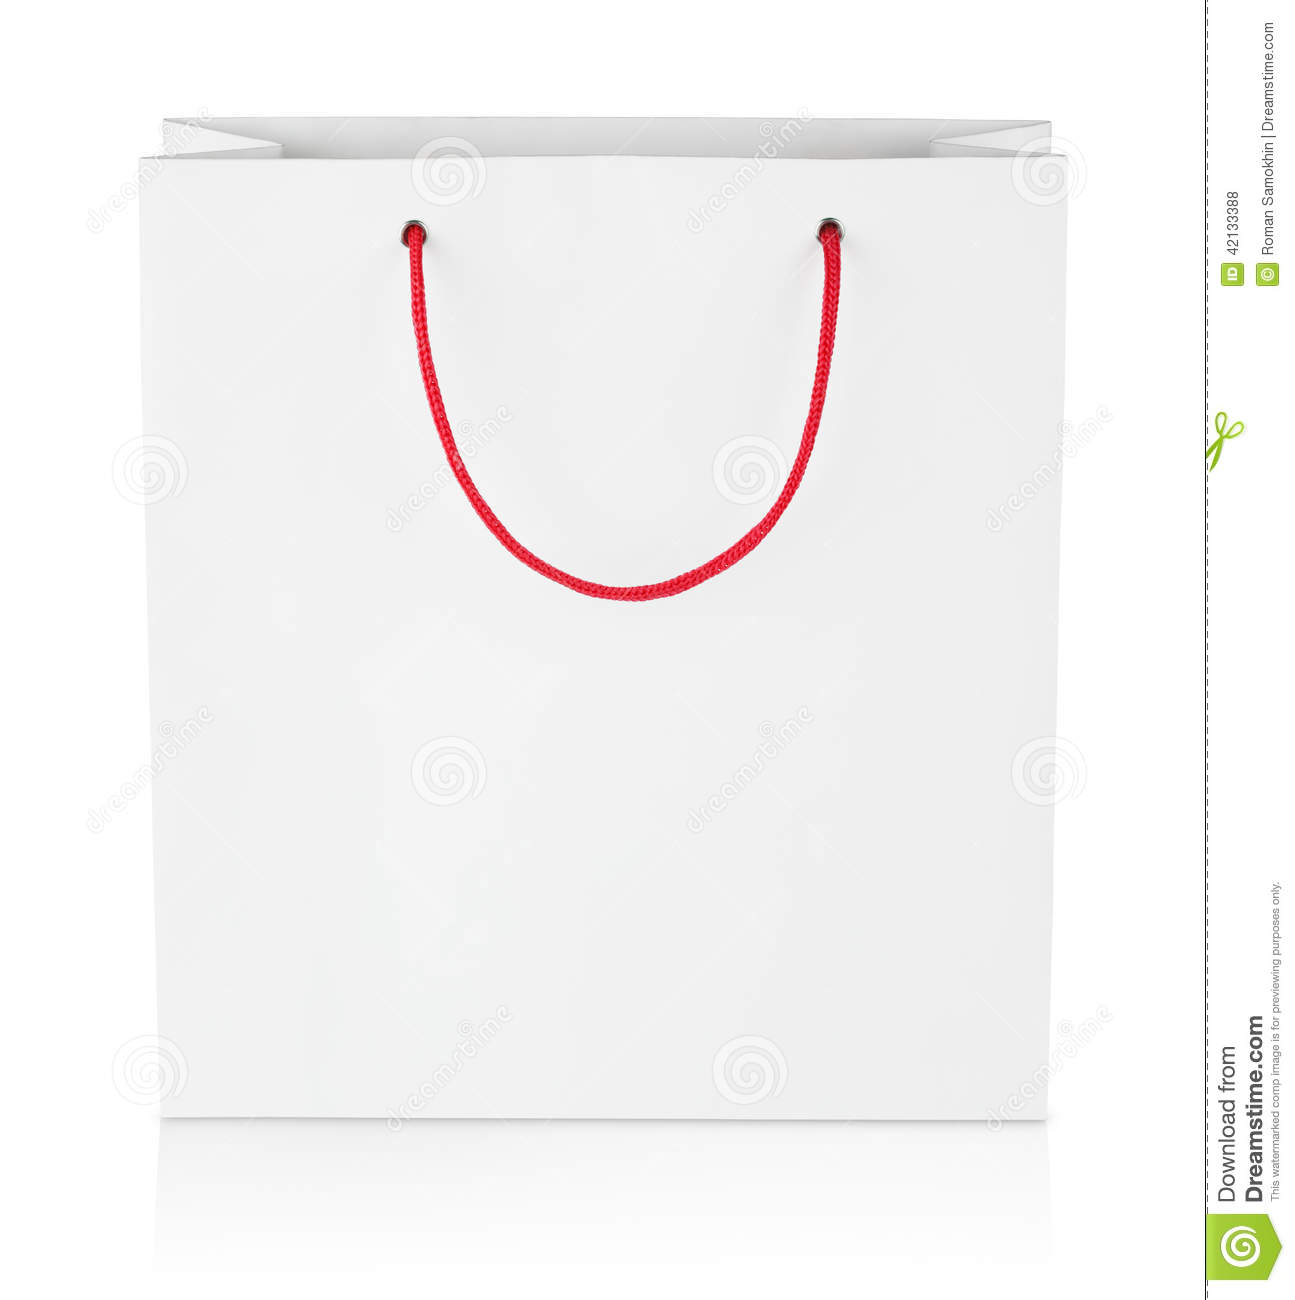 Square Shopping Bag On White Stock Photo - Image: 42133388